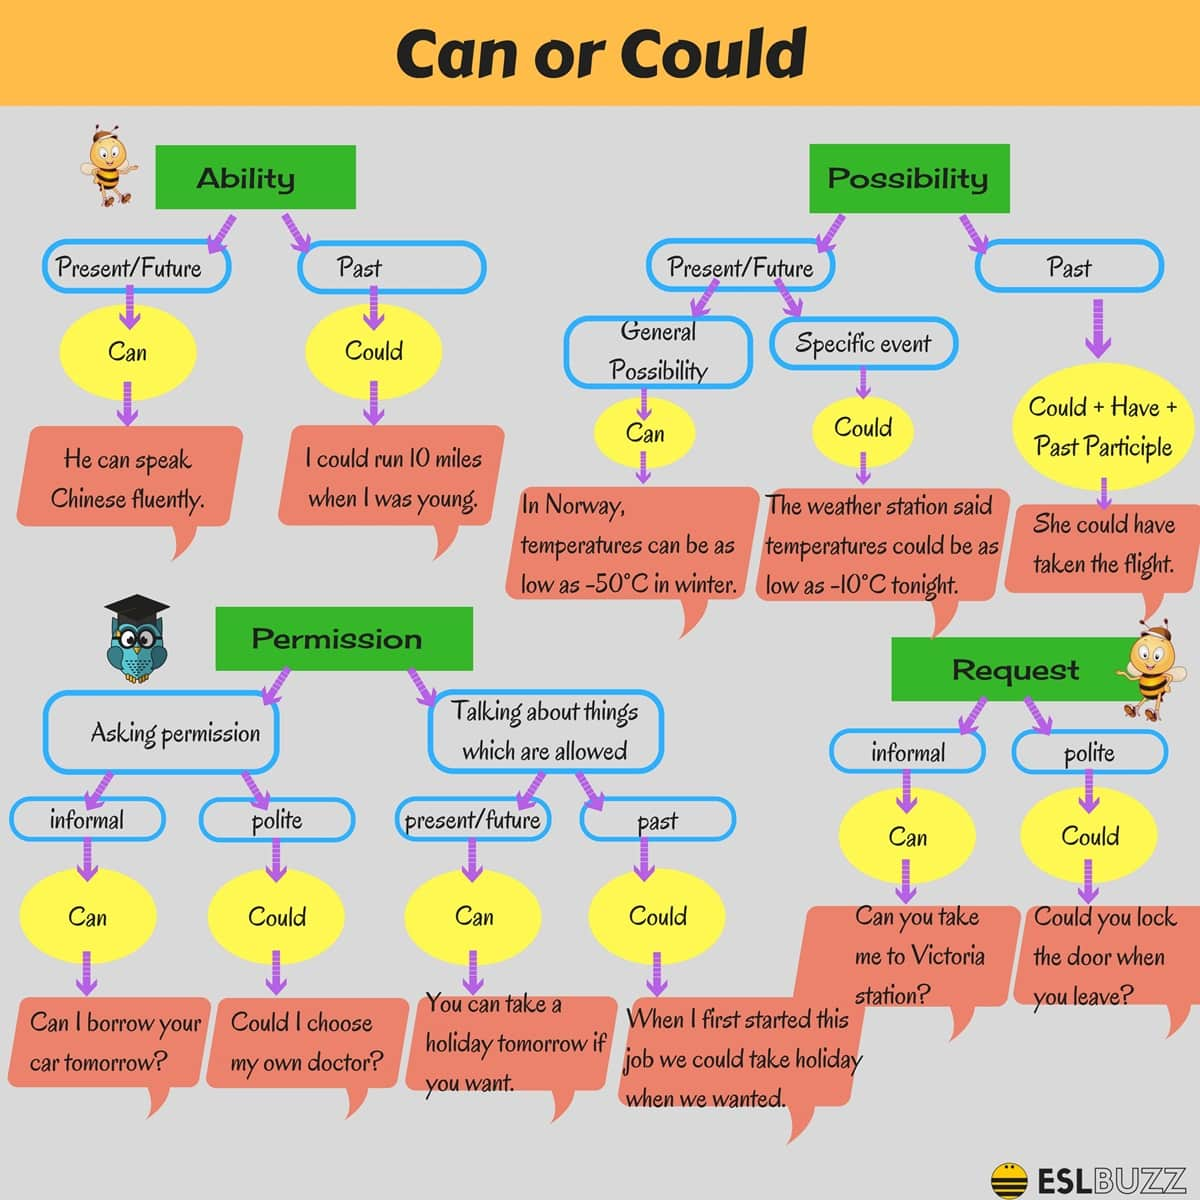 Differences between Can and Could